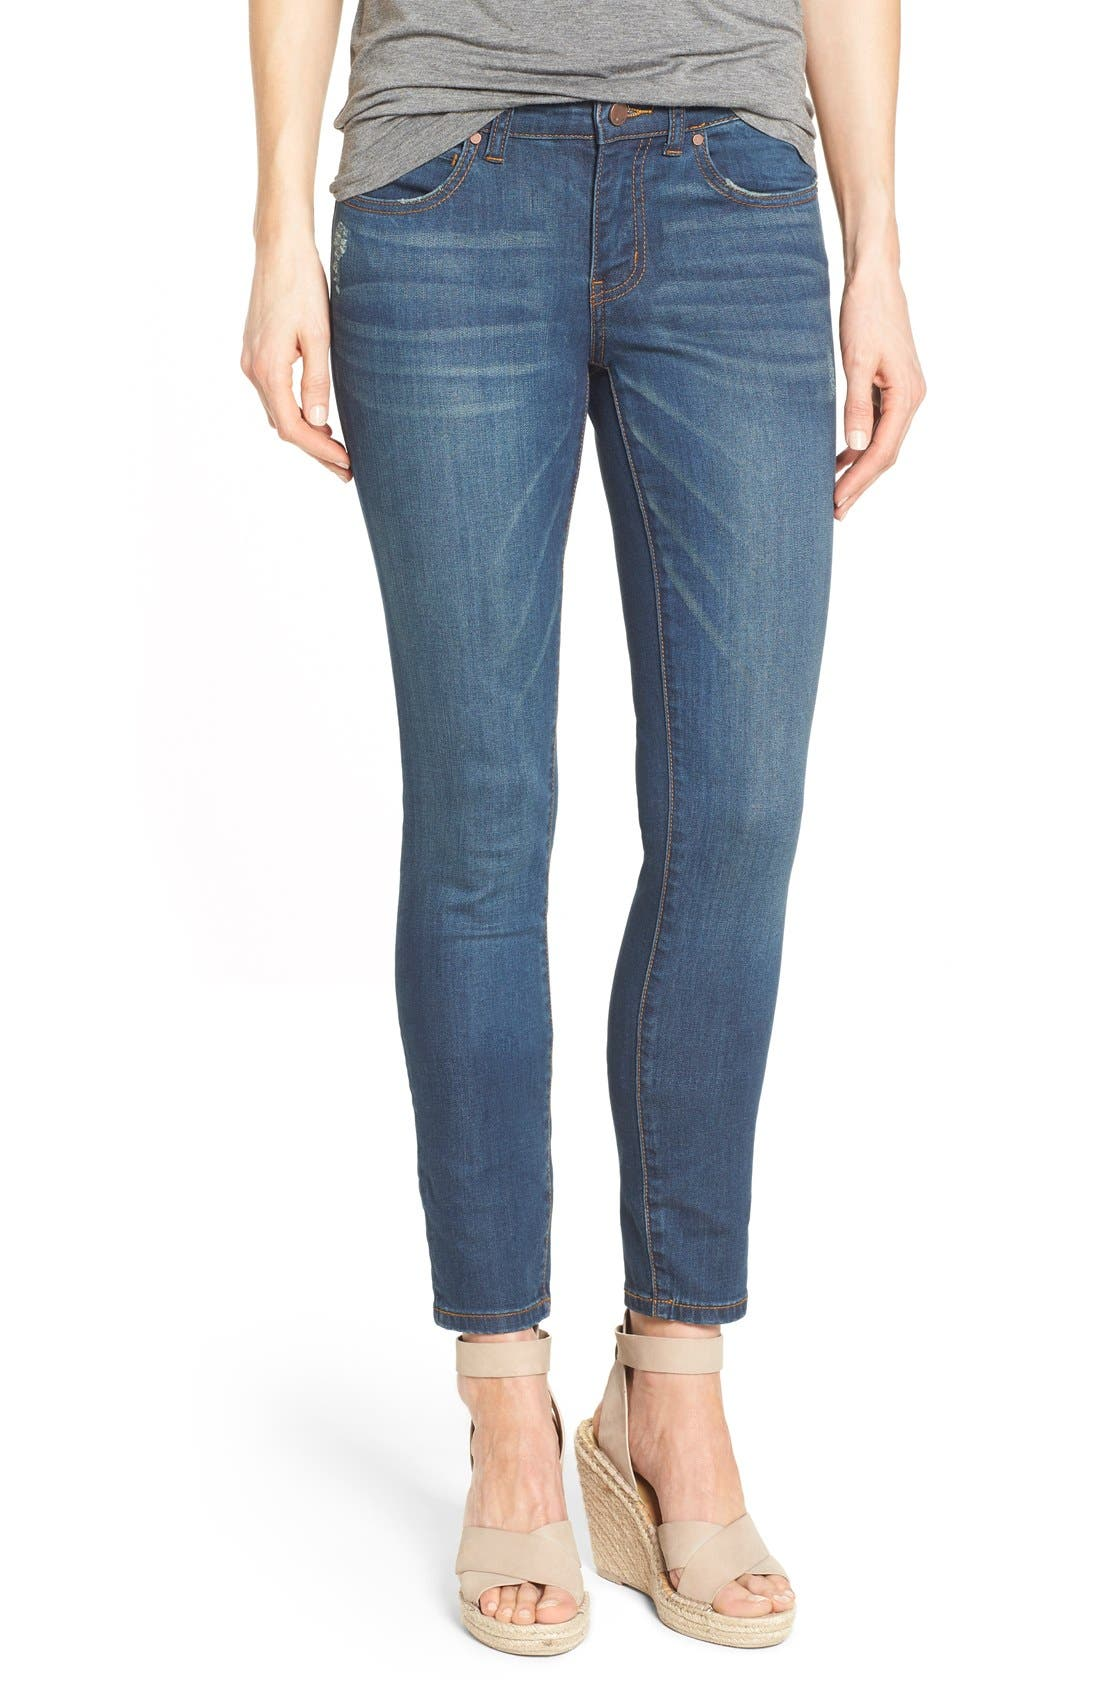 Alternate Image 1 Selected - Caslon® Stretch Skinny Ankle Jeans (Midnight) (Regular & Petite)